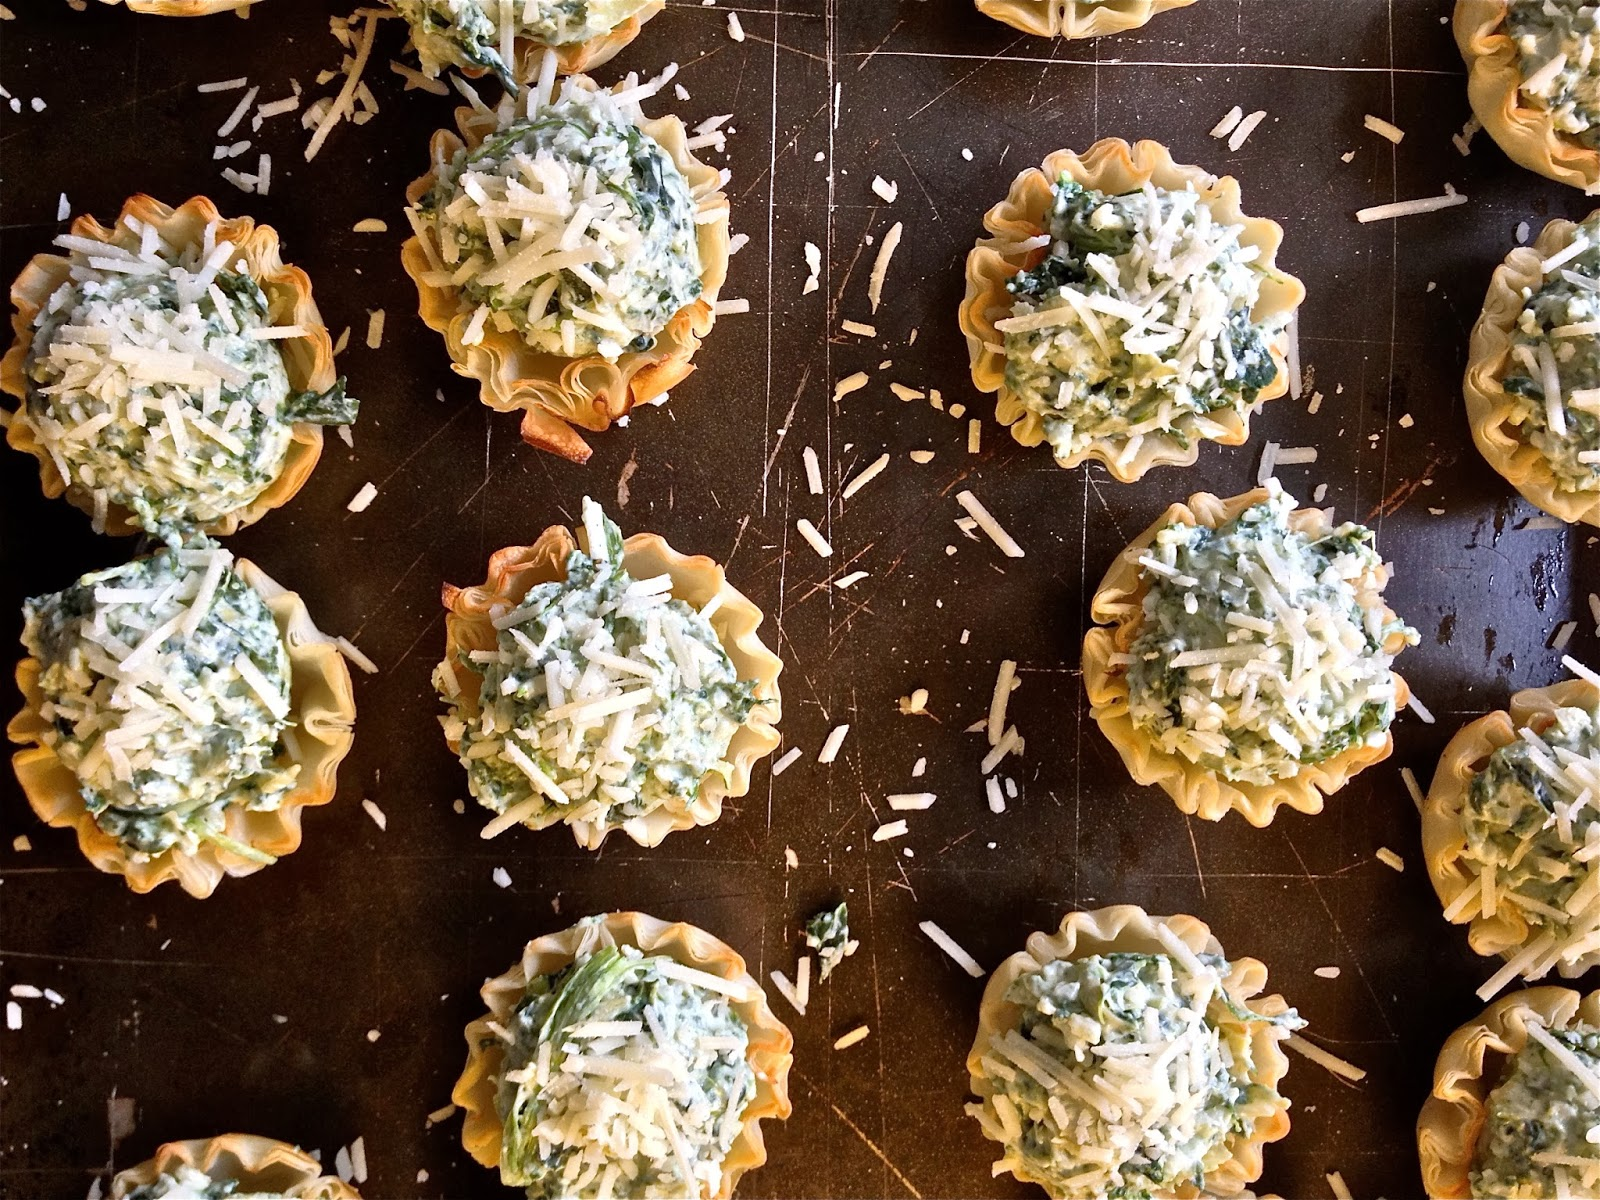 Spinach & Artichoke Canapes from